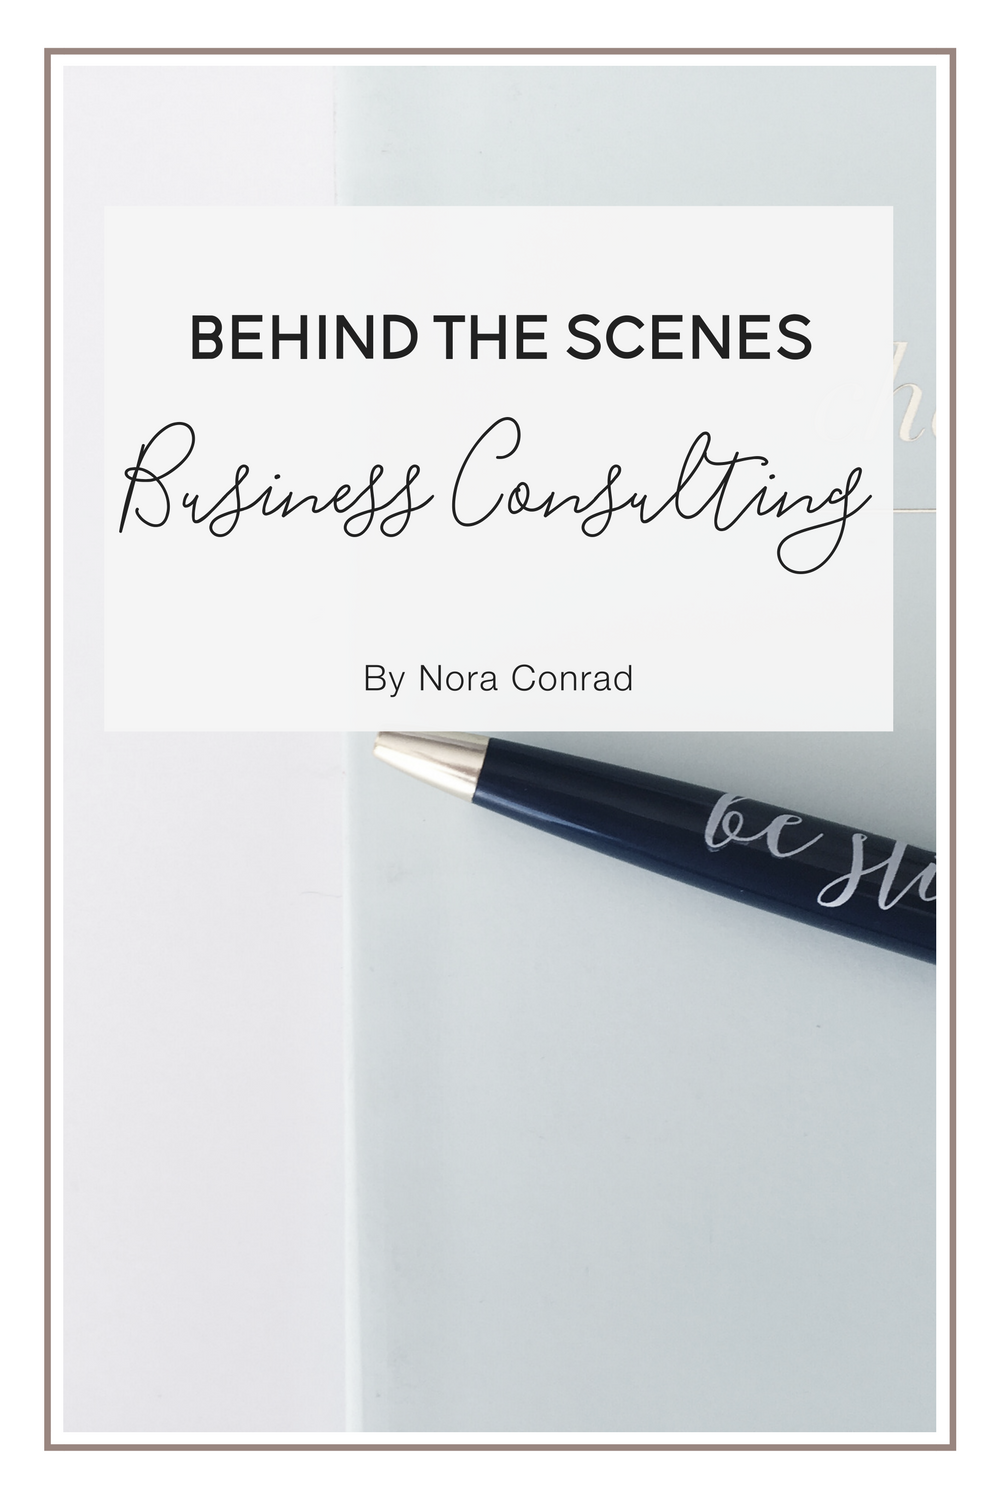 This post is all about the behind the scenes of business consulting. How to find clients, where to meet & talk, contracts, prices and the process. A full look at consulting from the consultant's side.